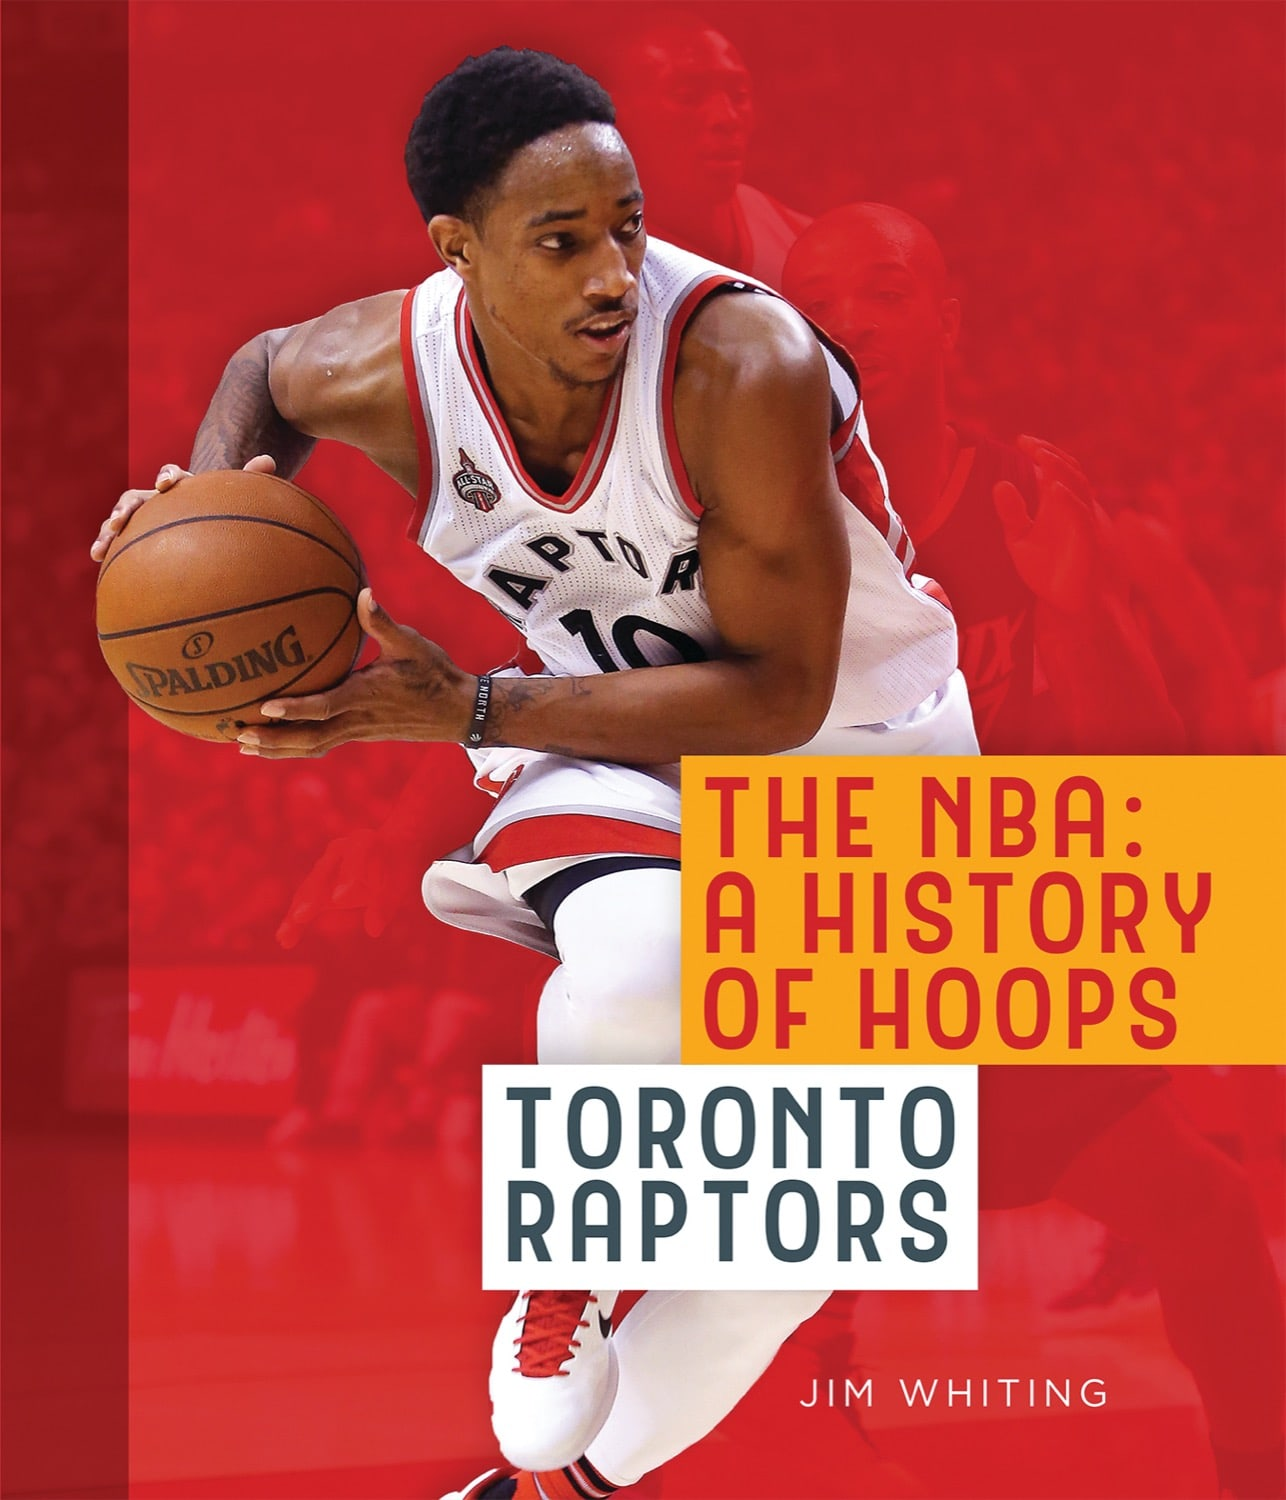 The NBA: A History of Hoops: Toronto Raptors